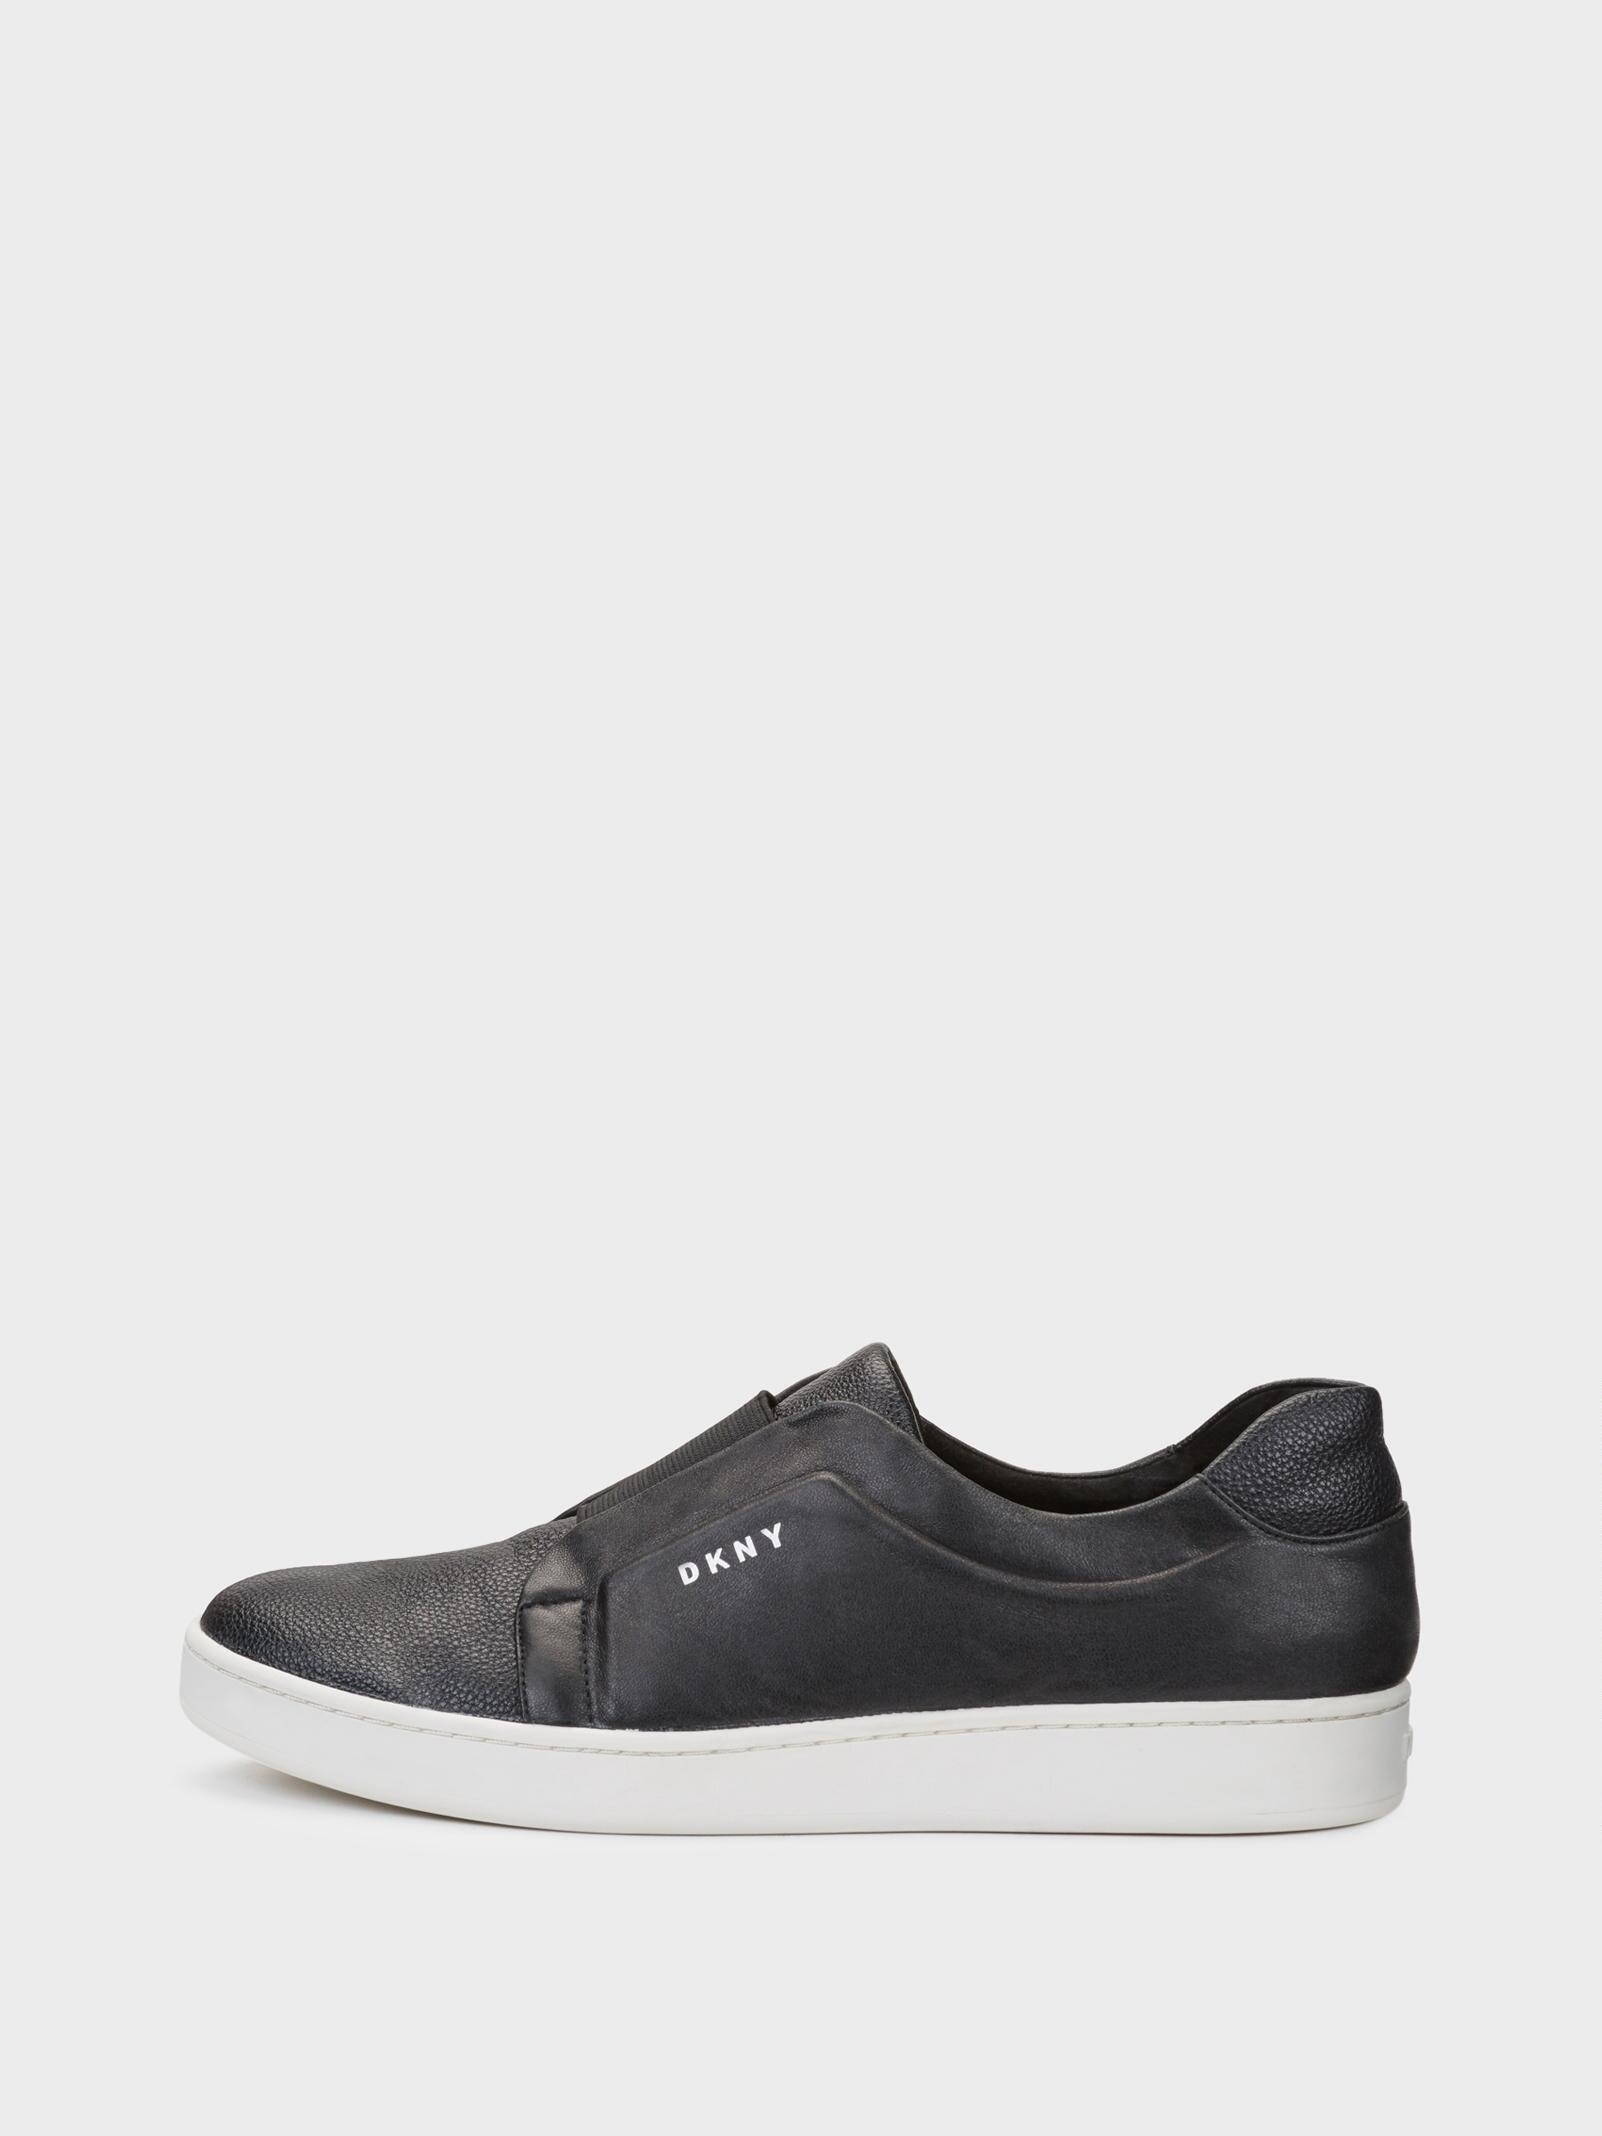 20d8559f1d904 DKNY Womens Bobbi Leather Low Top Slip On Fashion Sneakers